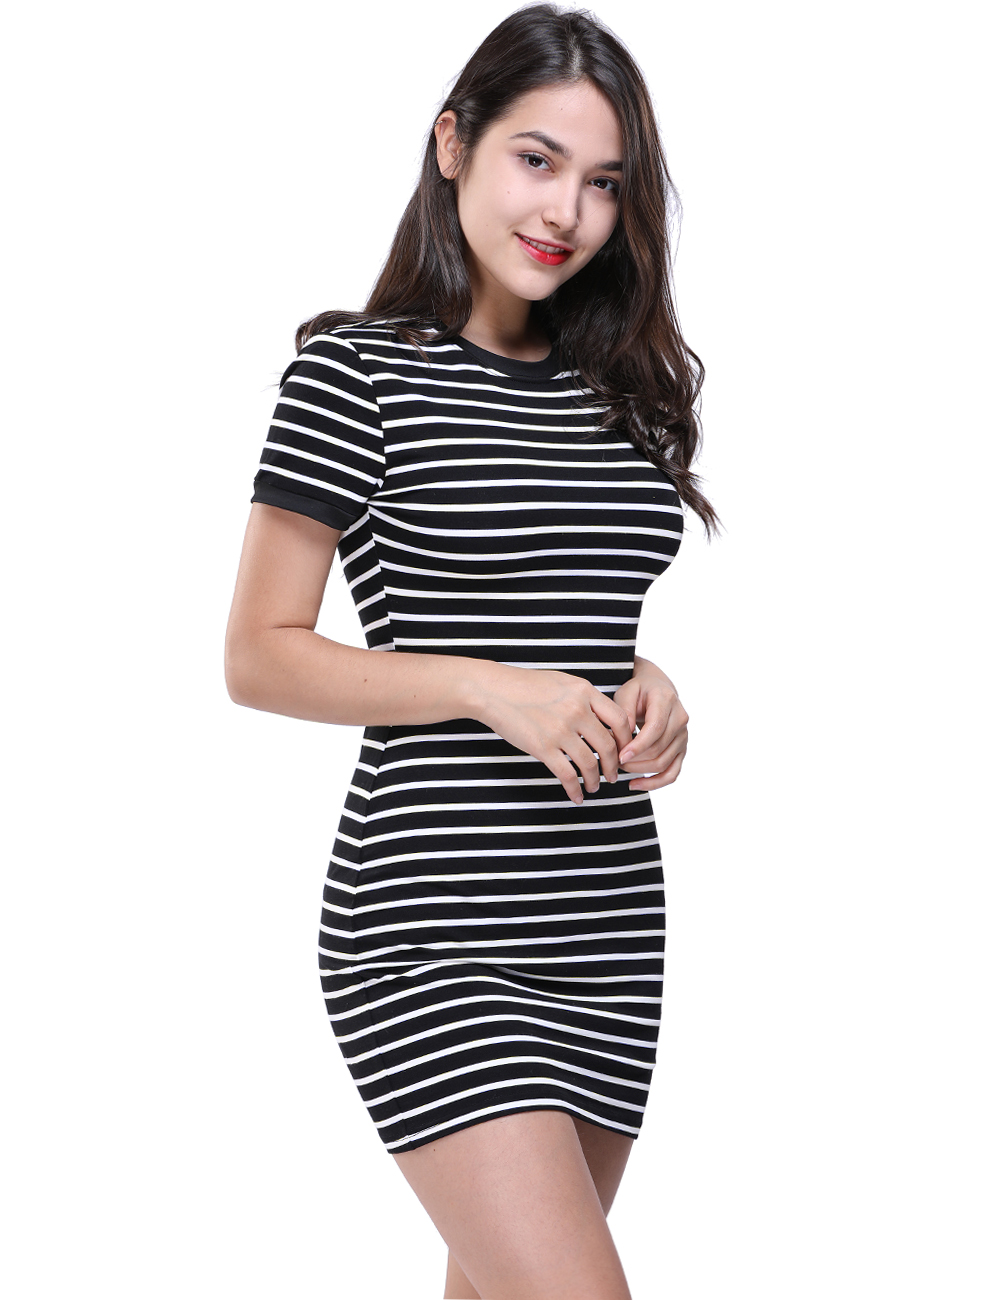 Enough Stock Summer Round Neck Short-sleeved Dress Black And White Striped Dresses Casual Elegant Slim Dress Dropshipping